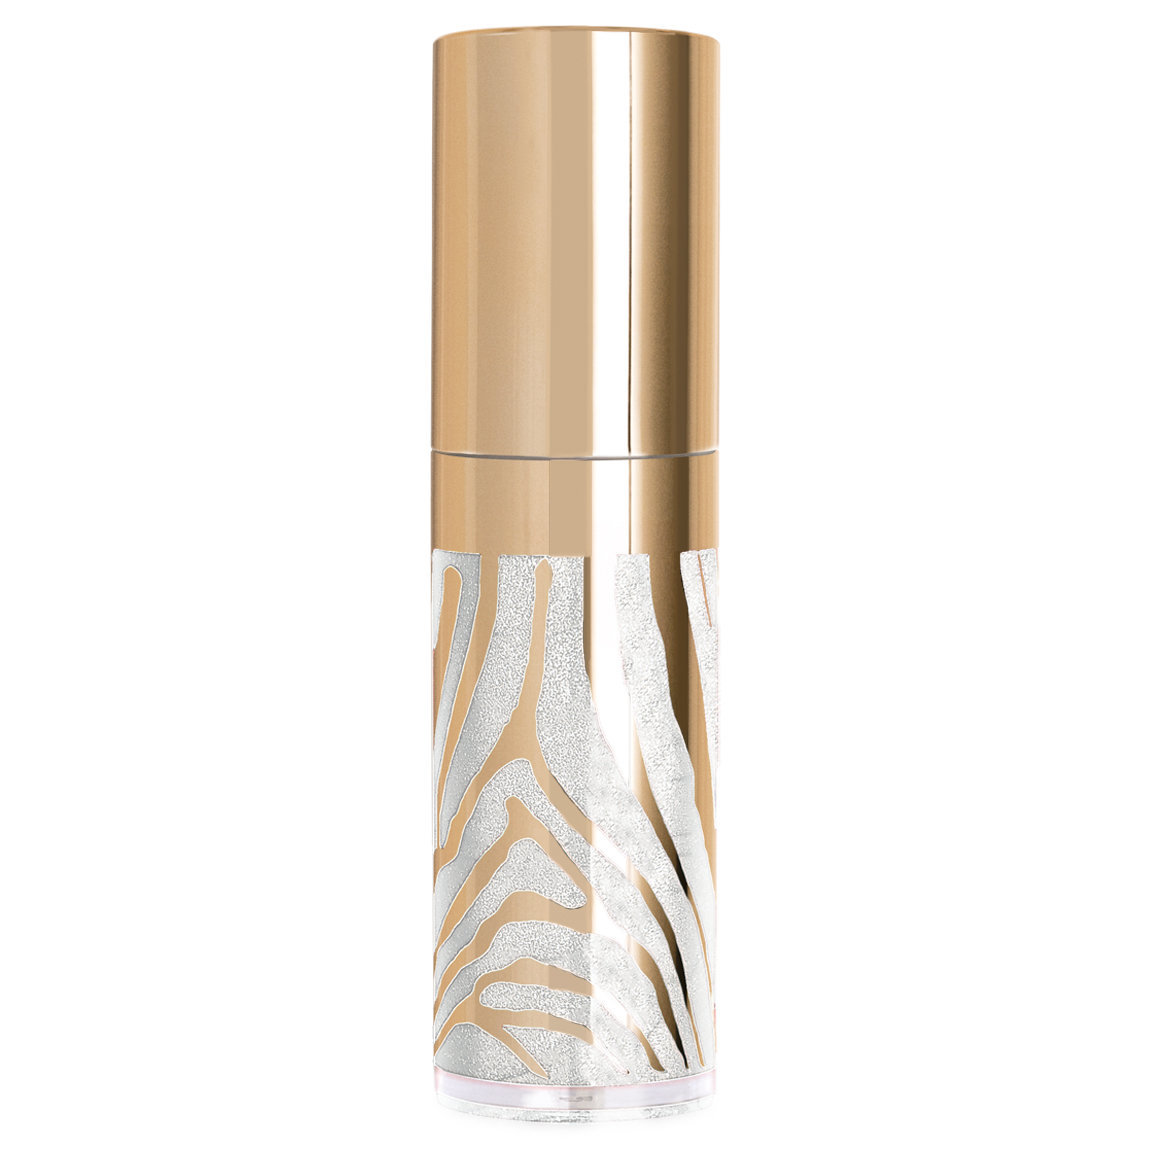 Sisley-Paris Le Phyto Gloss 1 Moon alternative view 1.